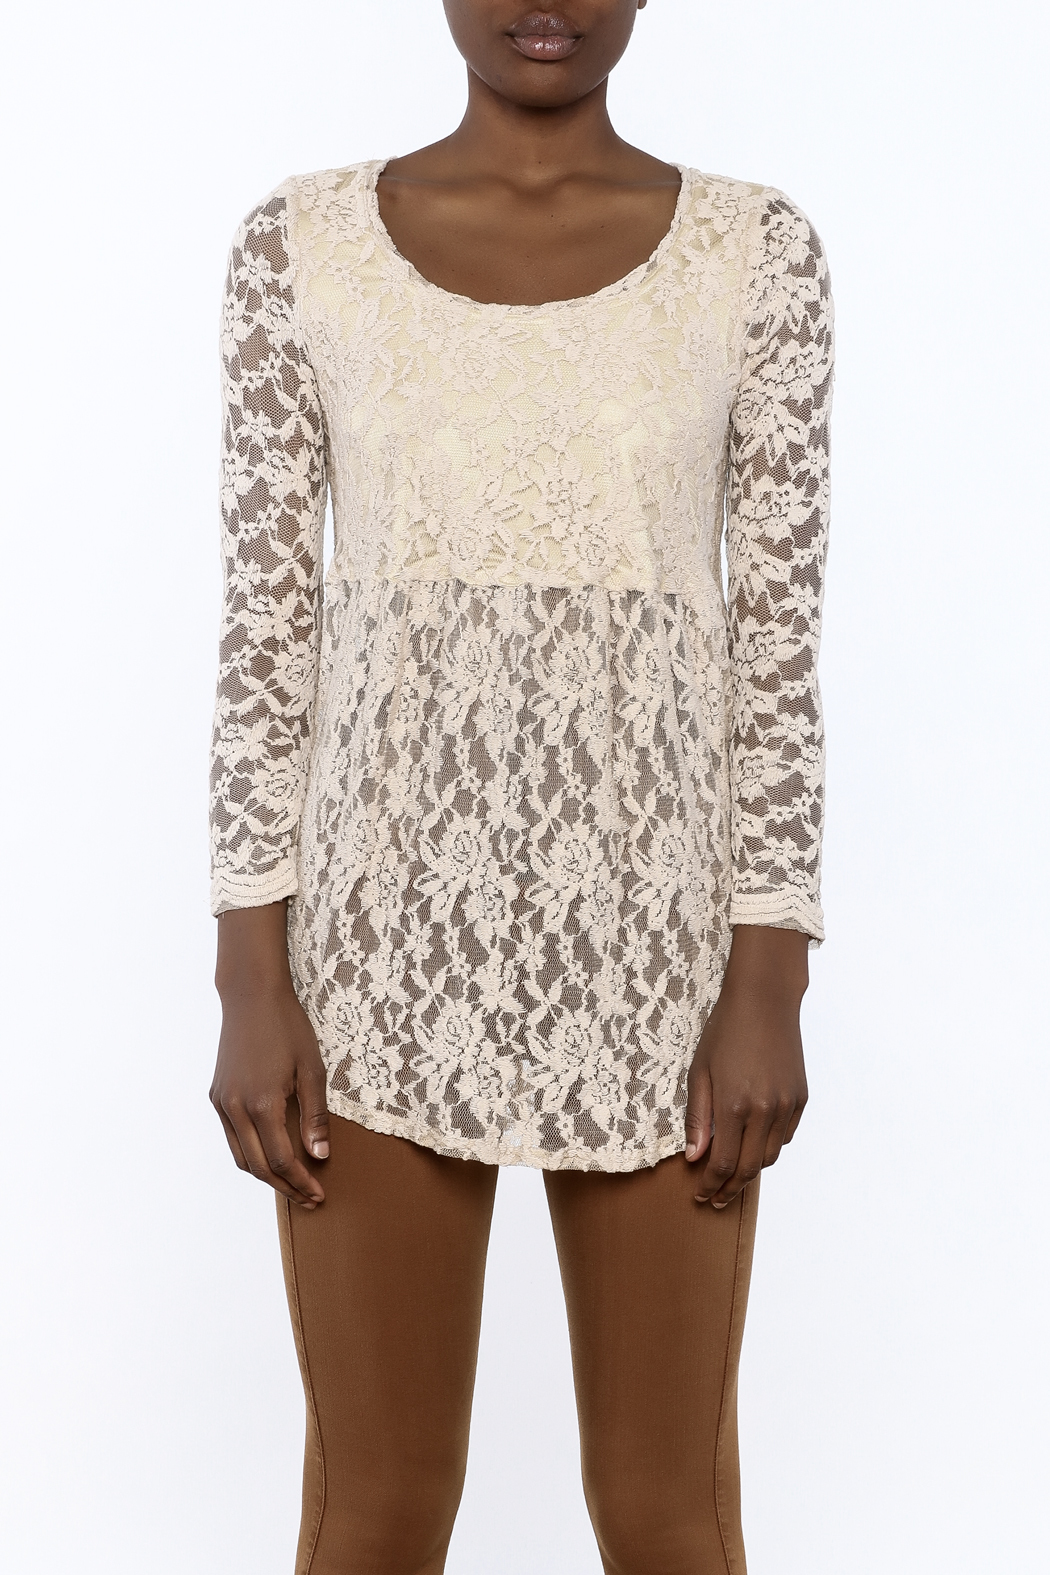 Ivy Jane Baby Doll Lace Top - Side Cropped Image